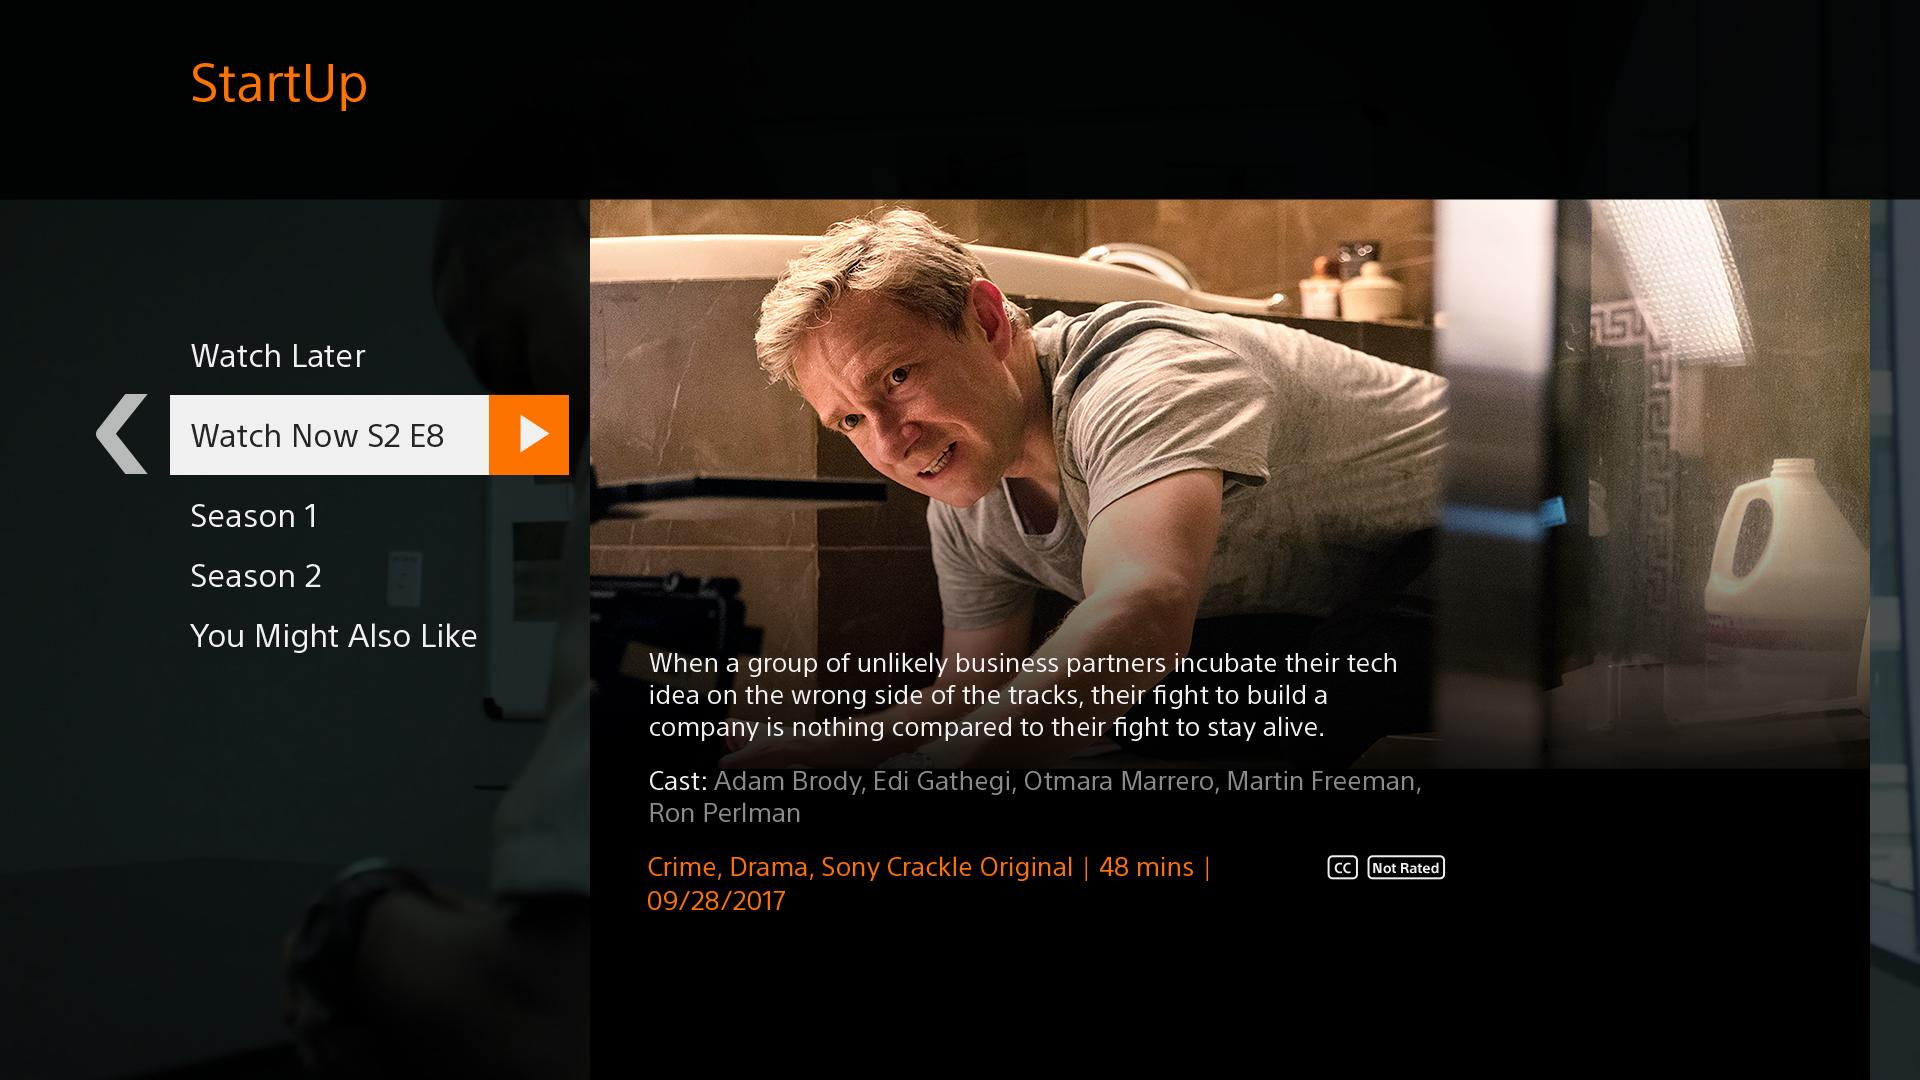 Sony Crackle - Free Movies & TV for Android - APK Download